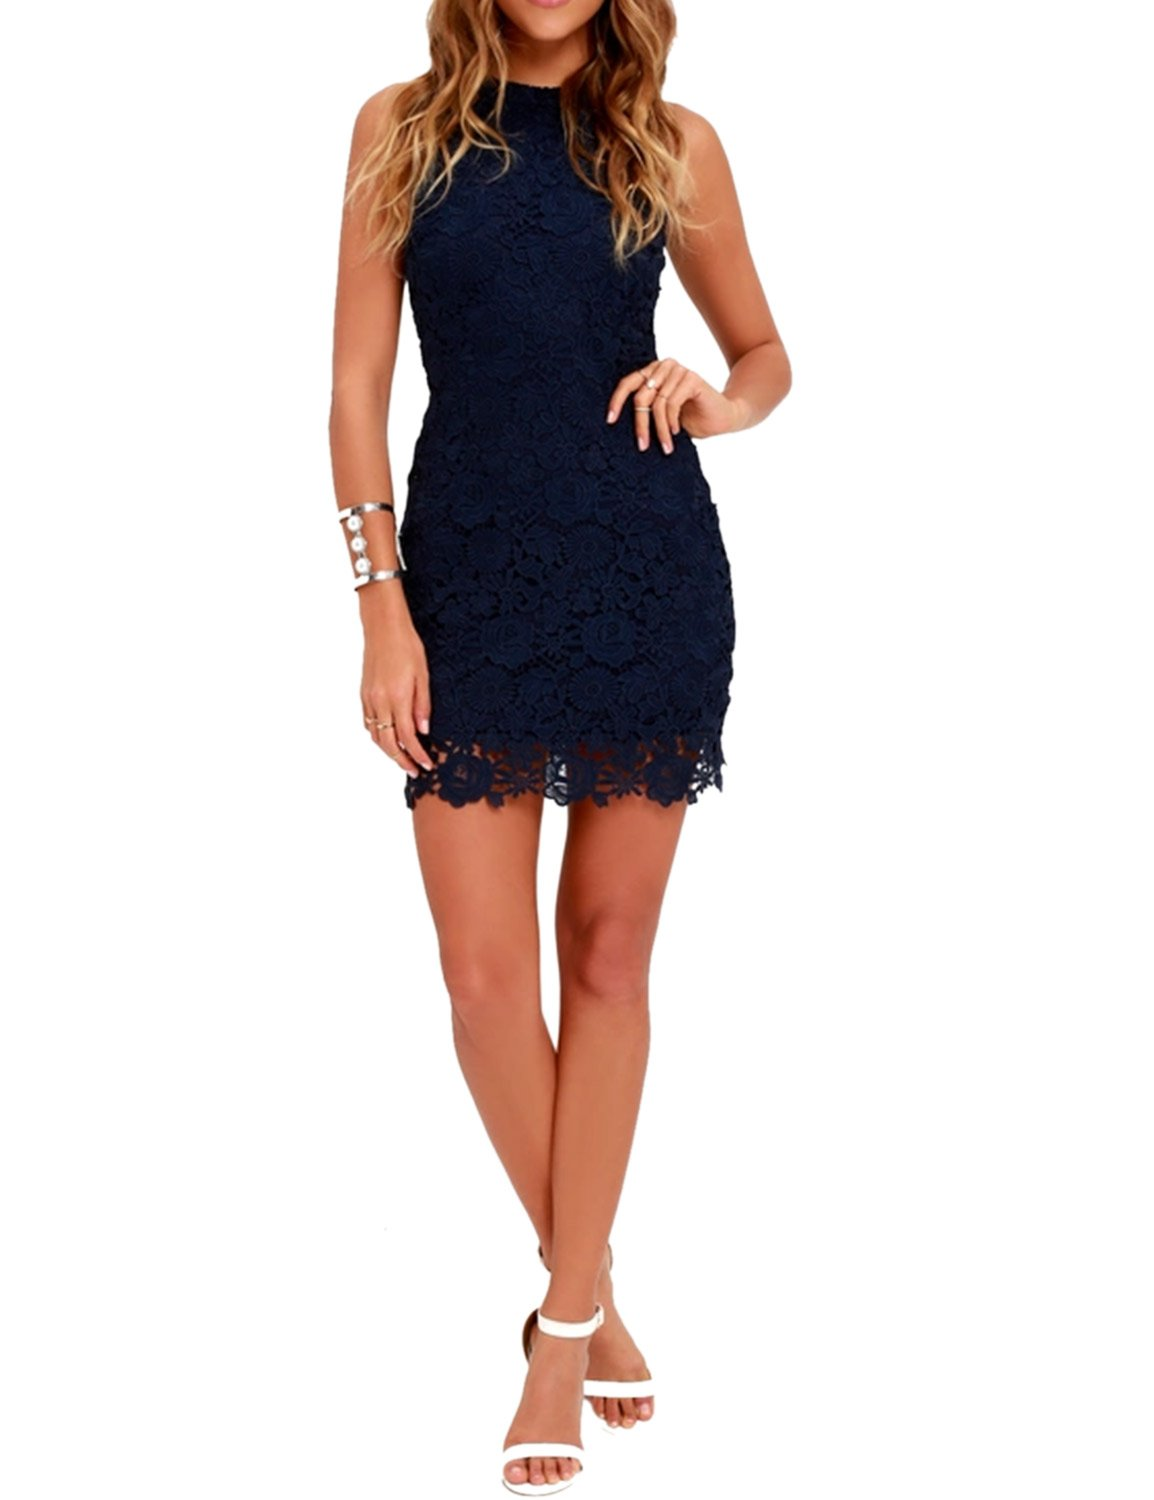 Lamilus Women's Casual Sleeveless Halter Neck Party Lace Mini Dress,Navy Blue,Small by Lamilus (Image #2)